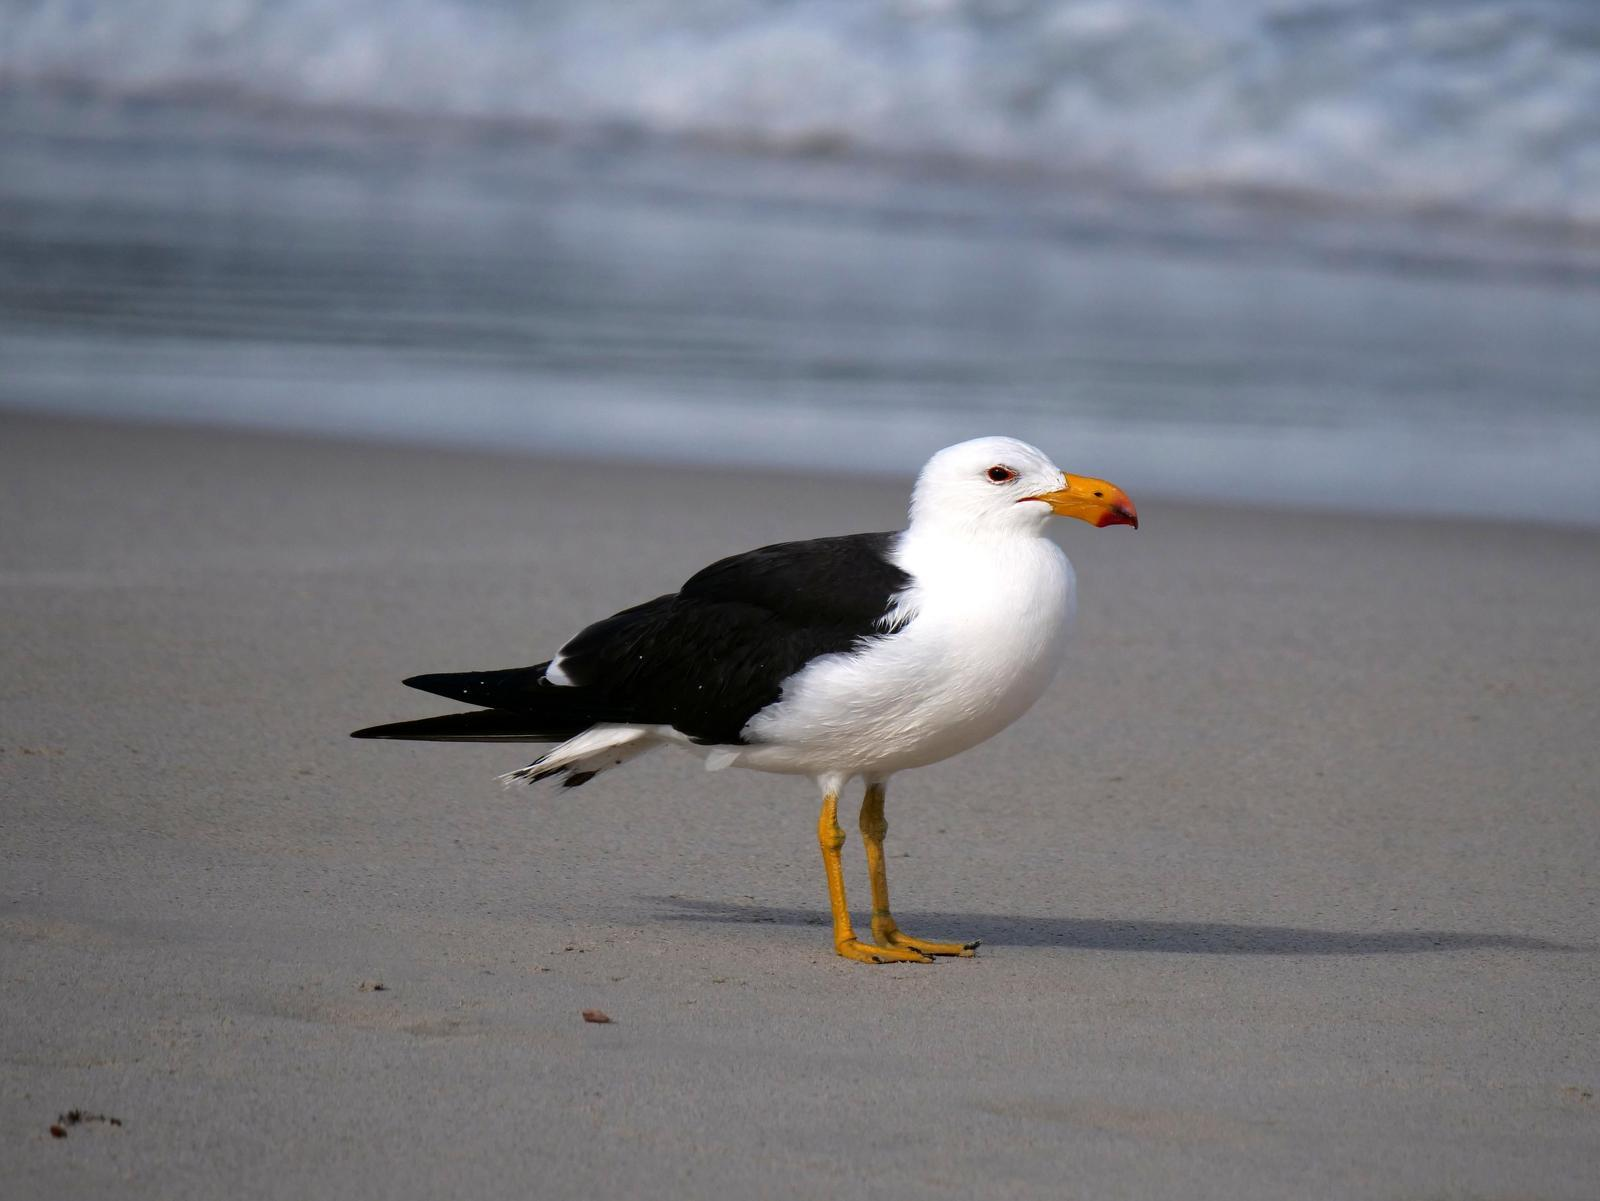 Pacific Gull Photo by Peter Lowe